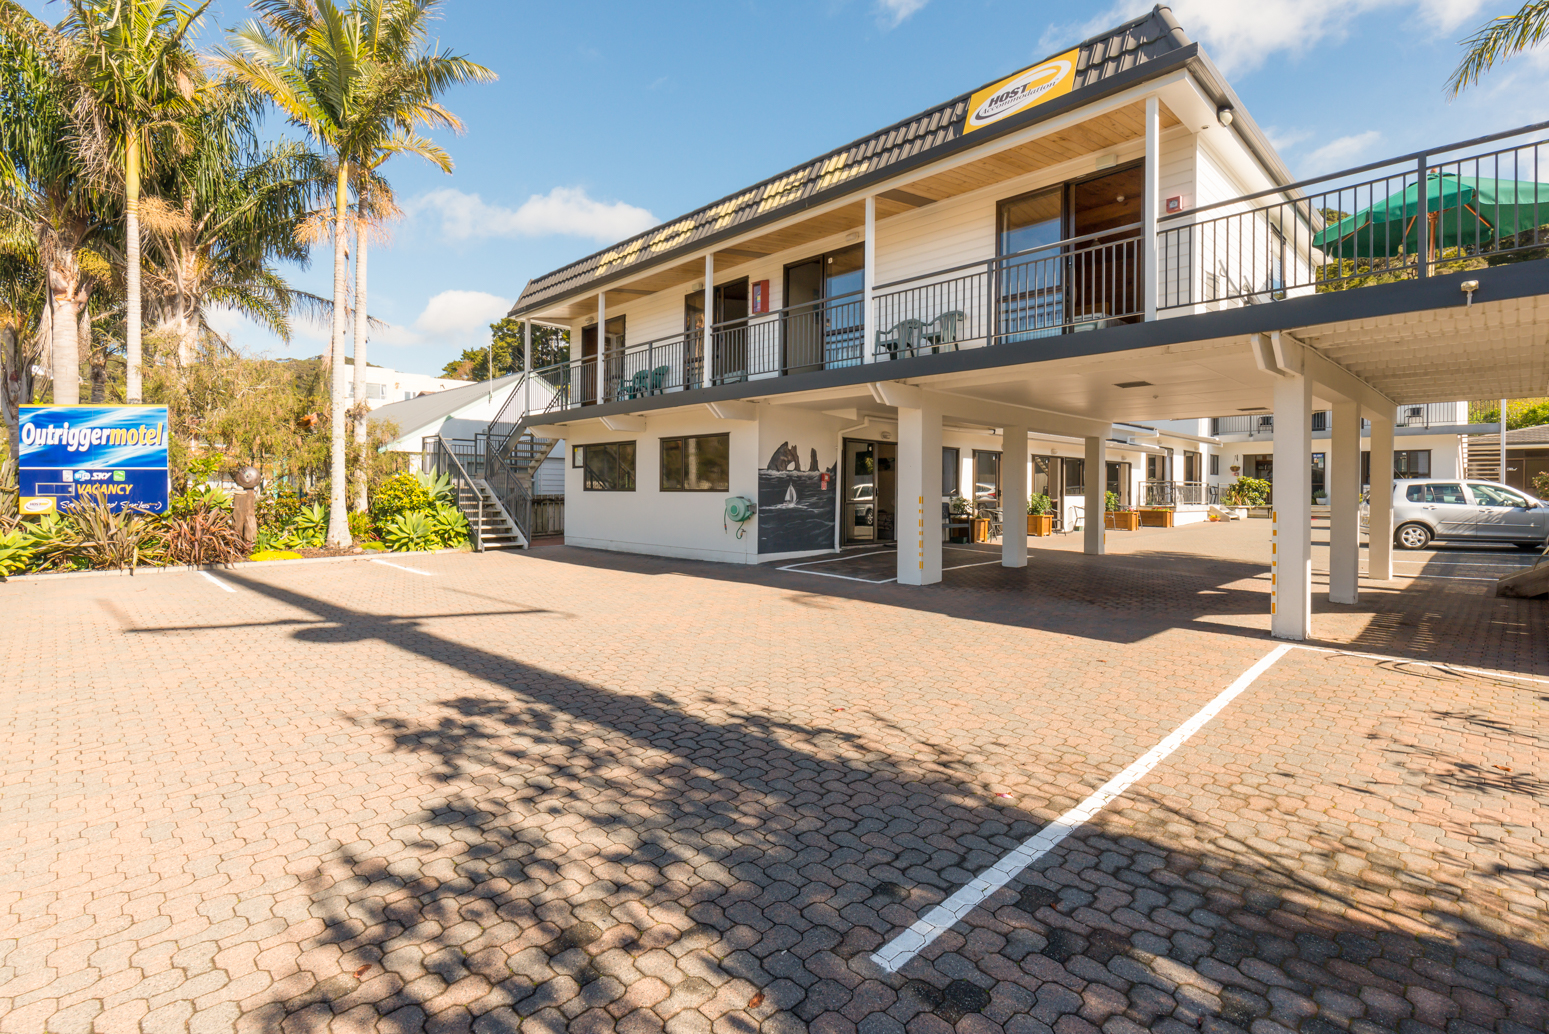 Anchorage Motel Accommodation Paihia Bay Of Islands Spoilt For Choice